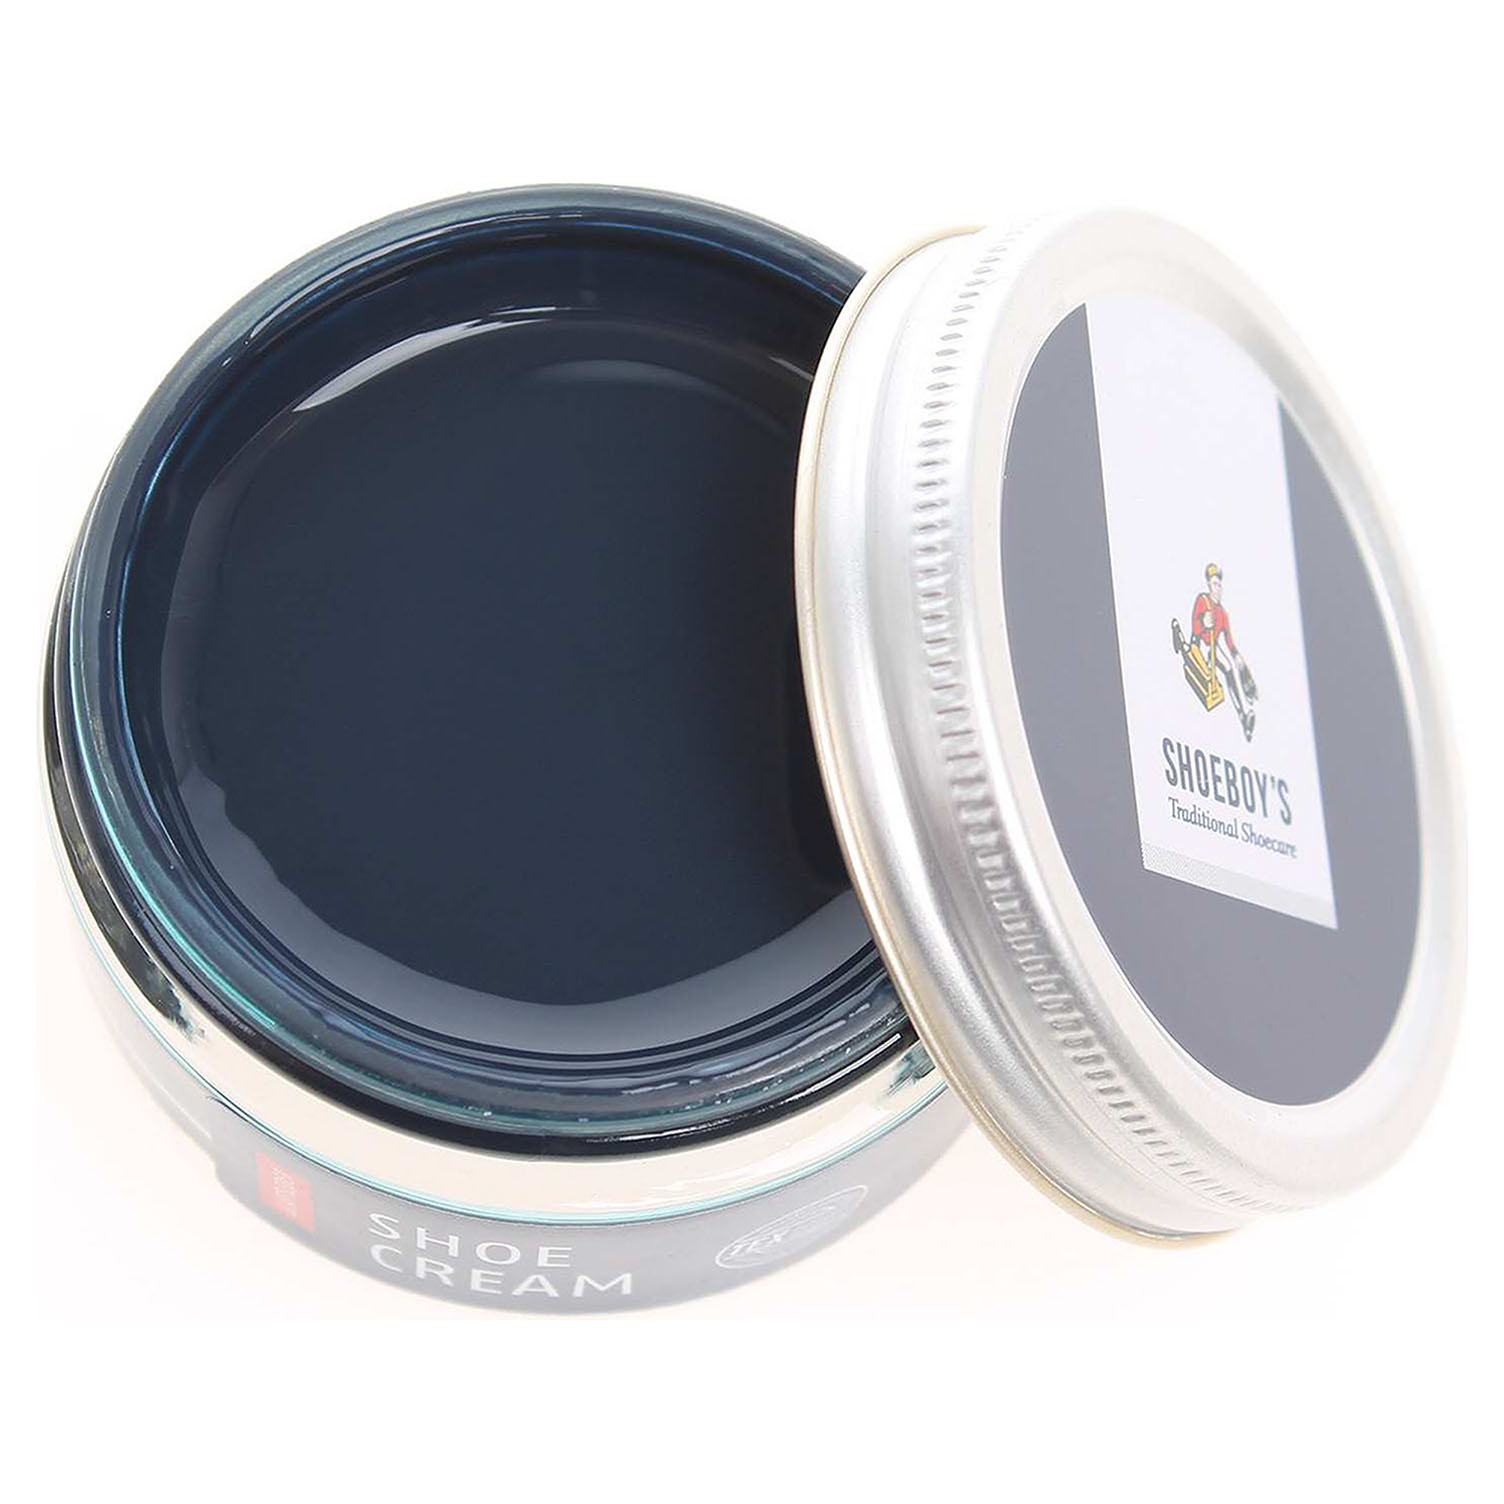 Shoeboy´s Shoe Cream dark blue